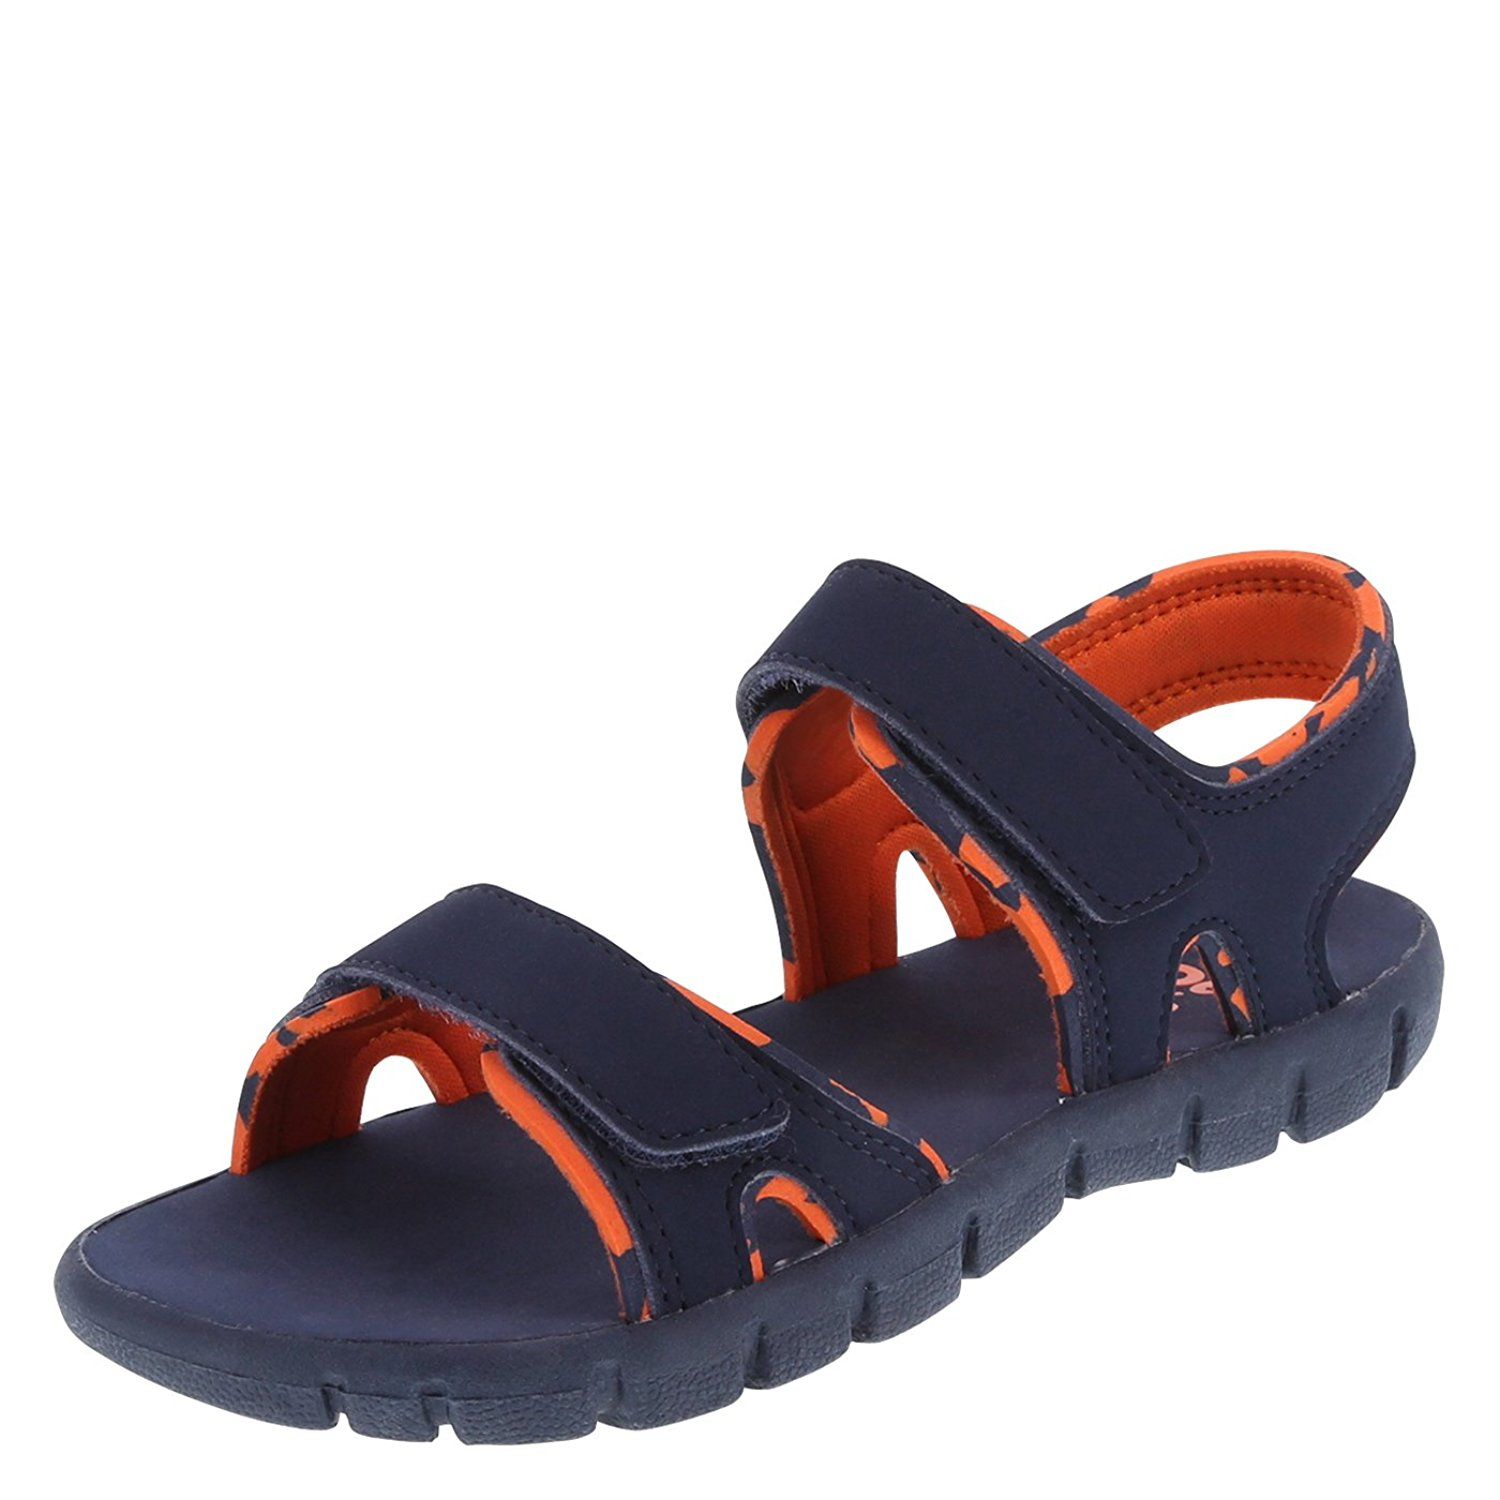 ecb135d52 Get Quotations · Zoe and Zac Boys' Navy Boys' Parker Sport Sandal 6 Regular